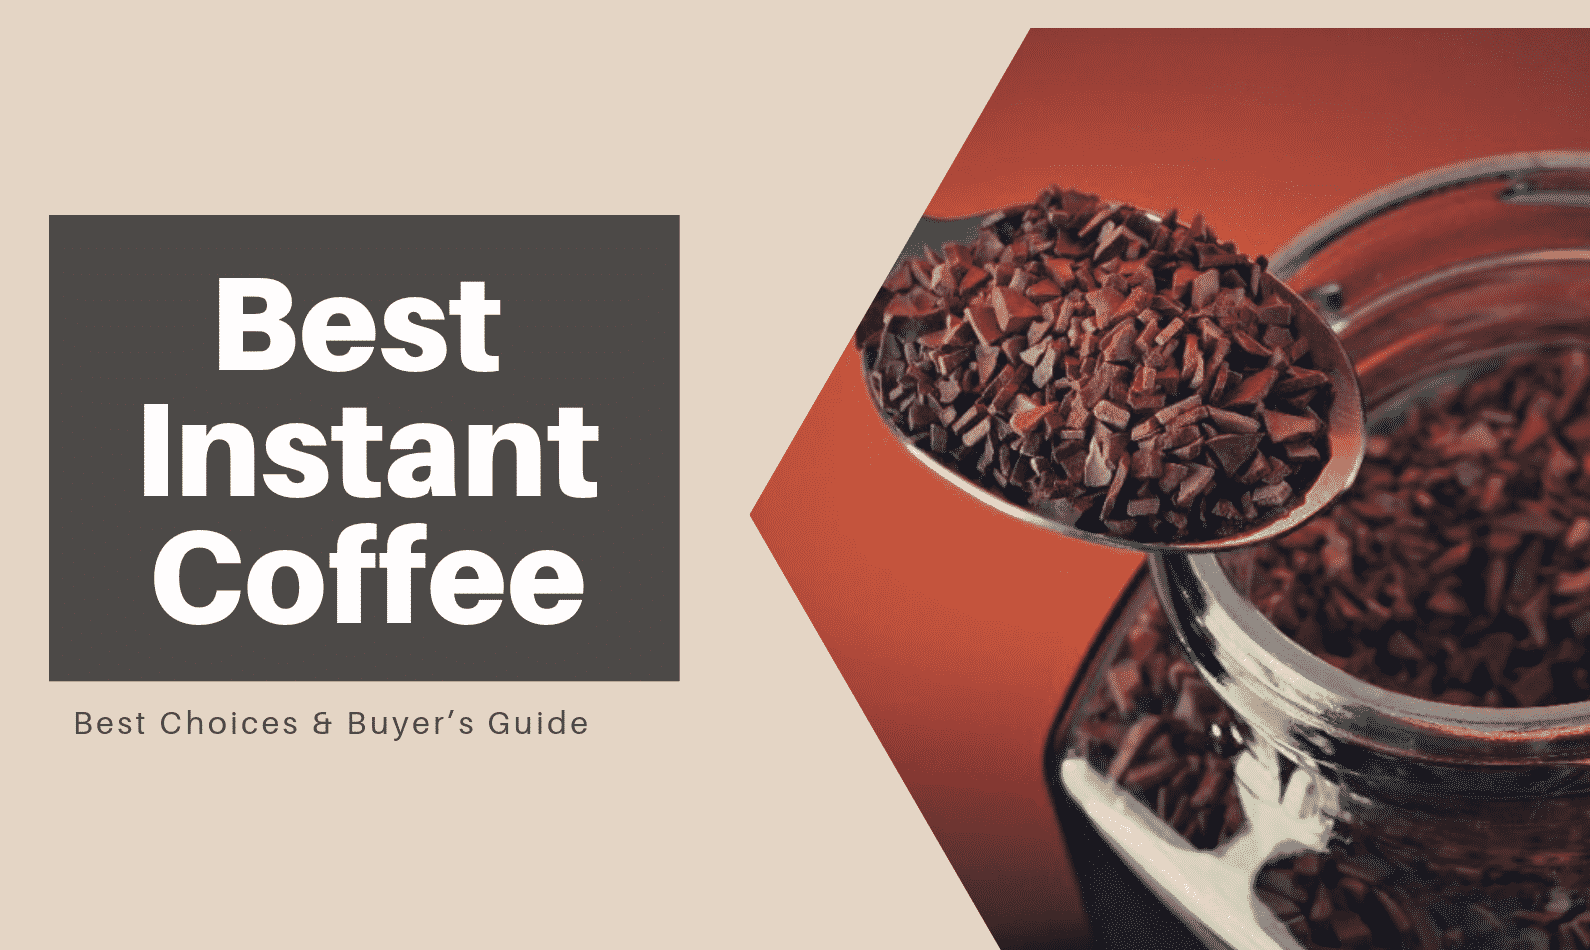 Best Instant Coffee 2020 Best Choices Buyers Guide